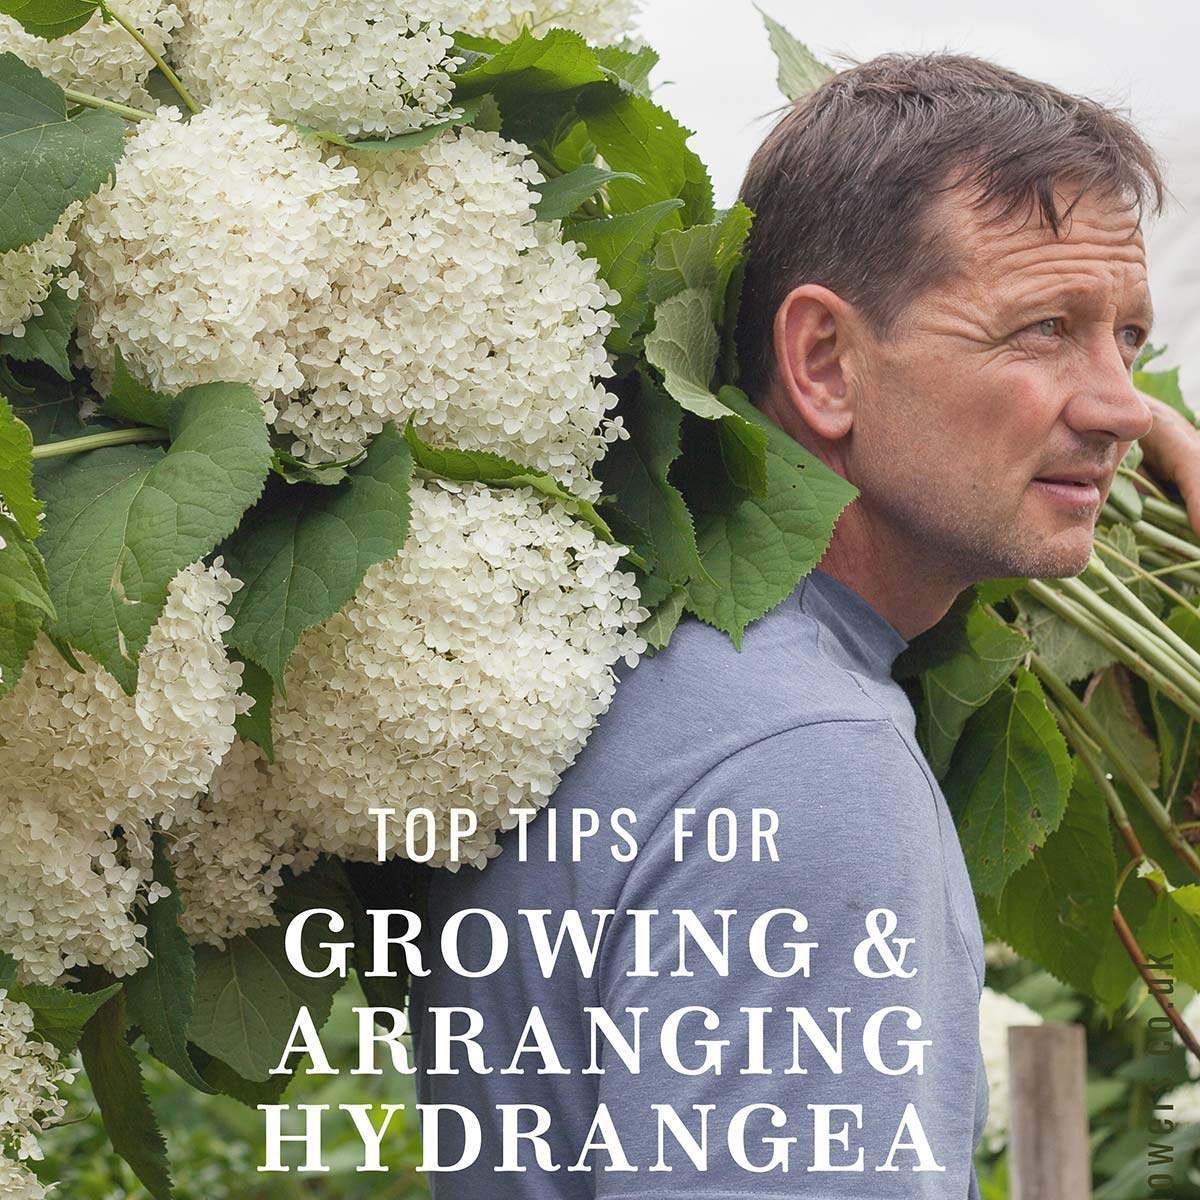 Top tips for growing and arranging hydrangeas